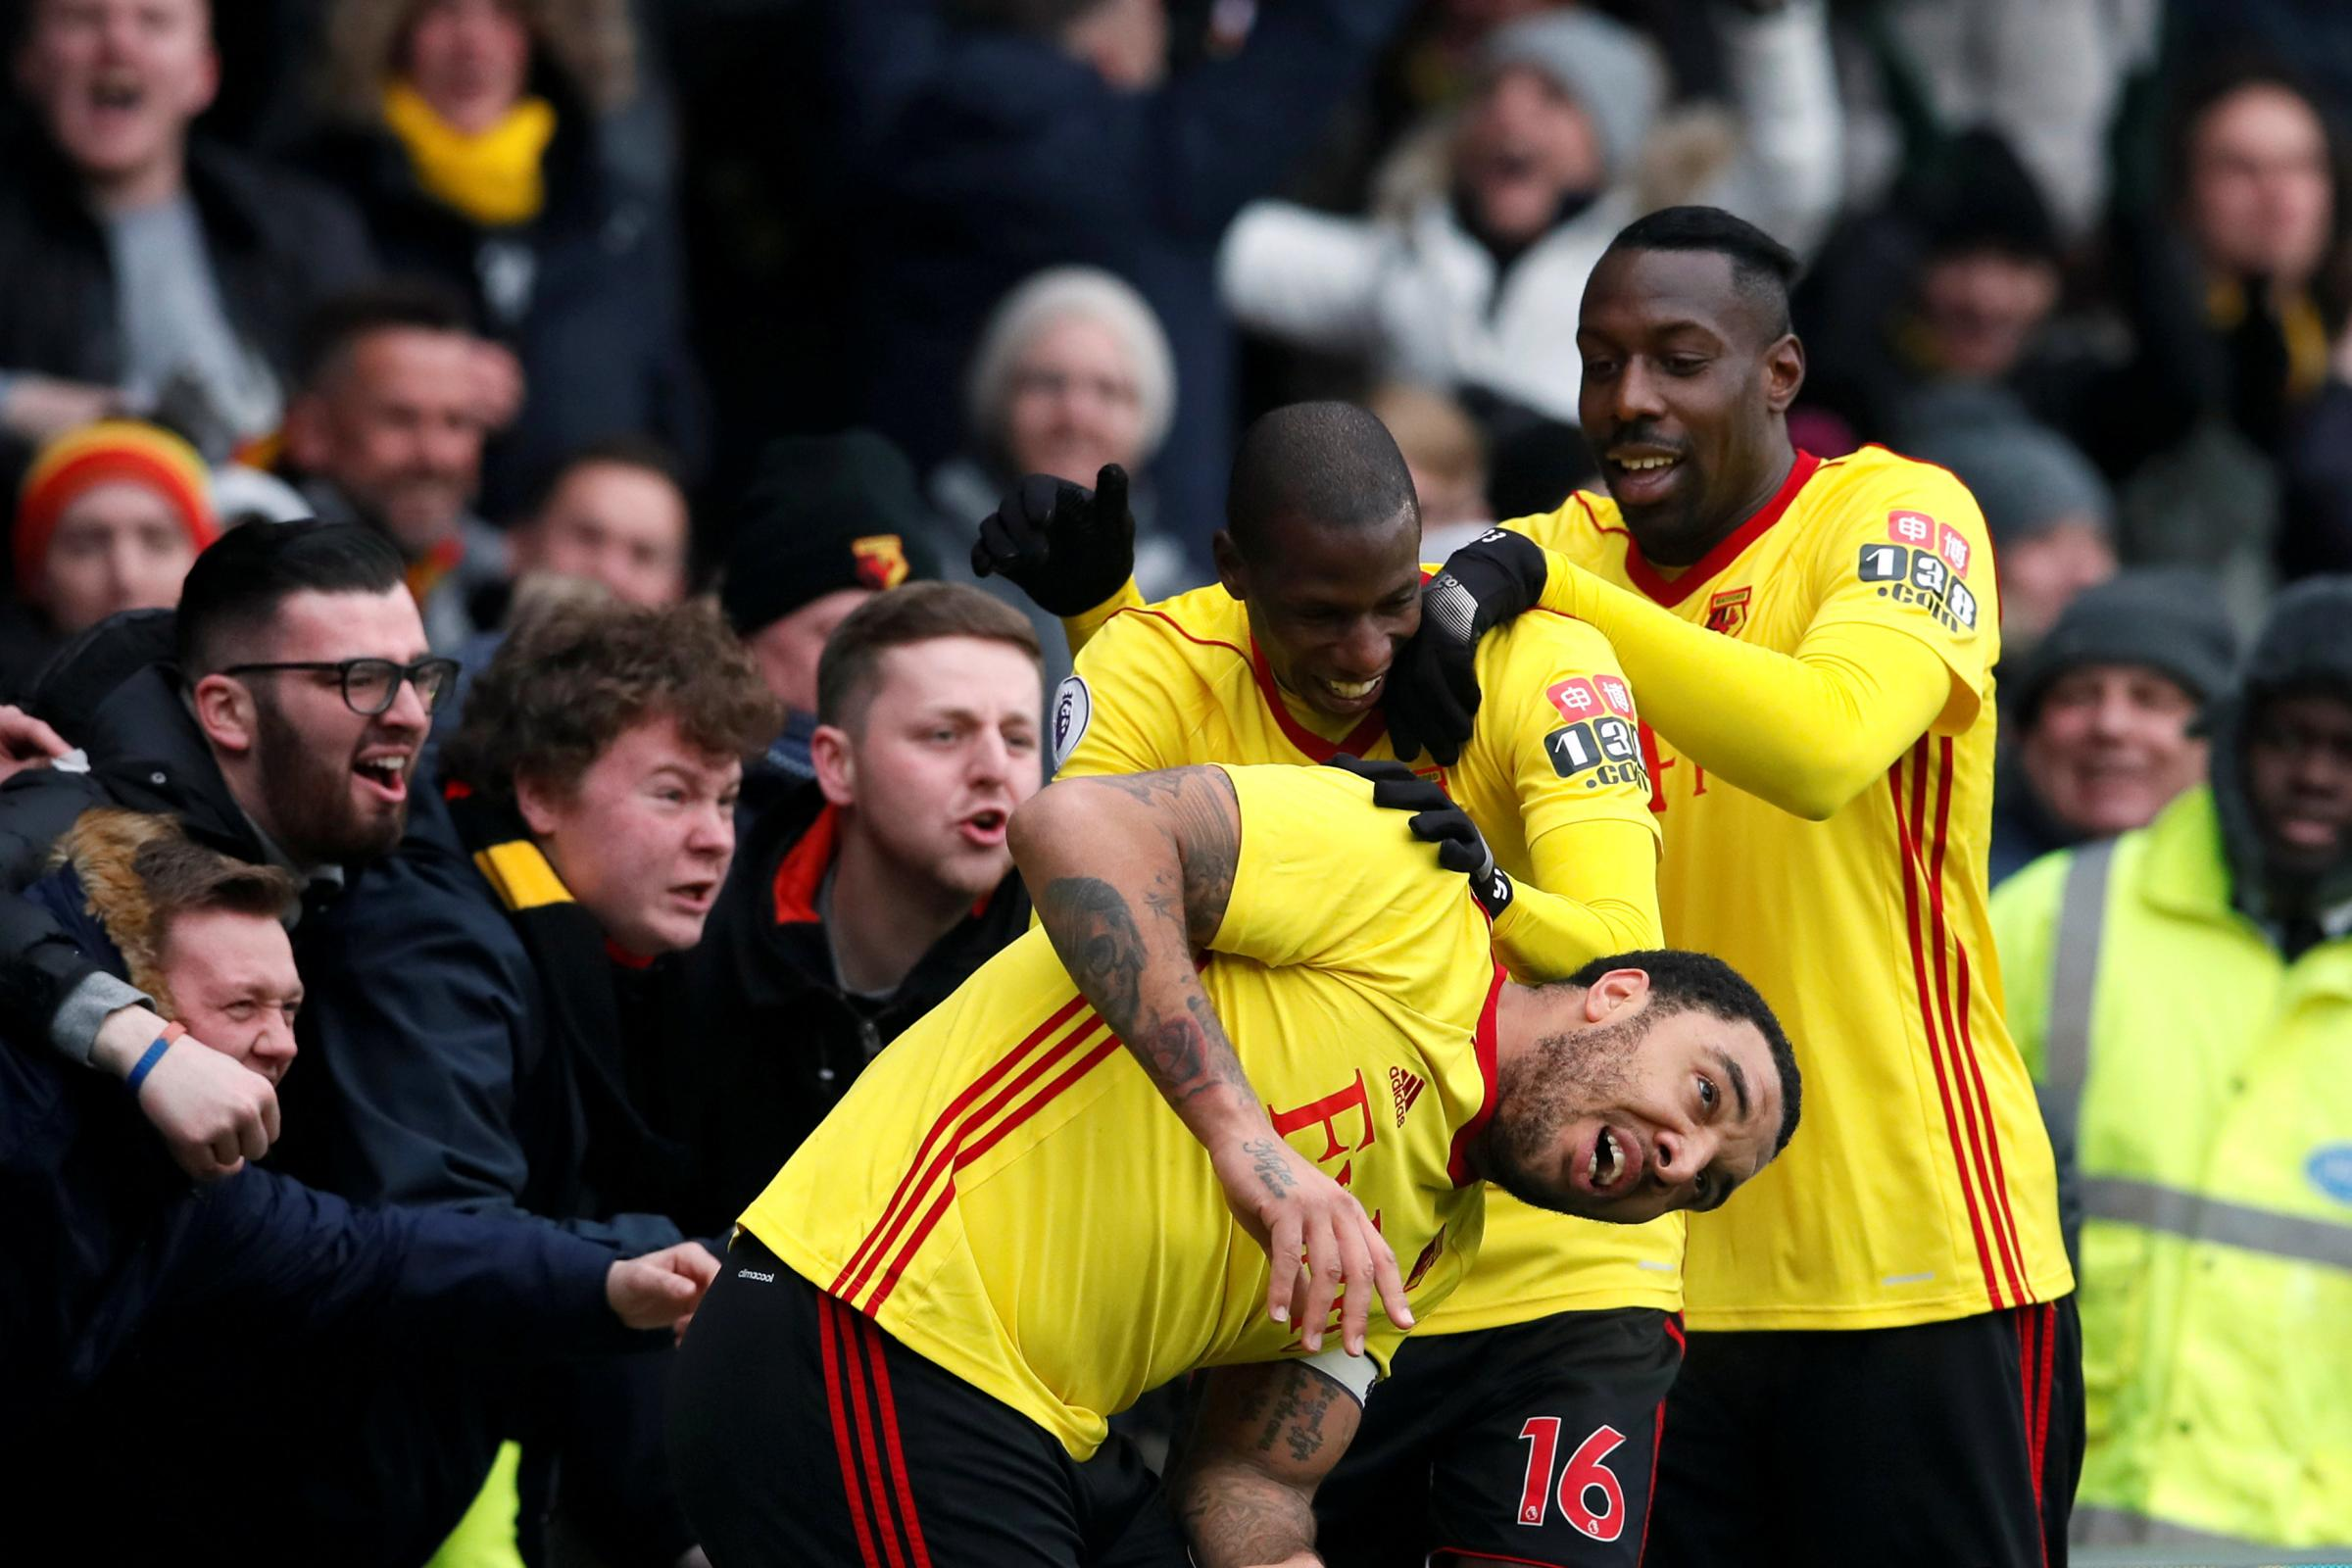 Watford's players celebrate Troy Deeney's winner at Vicarage Road yesterday. Picture: Action Images